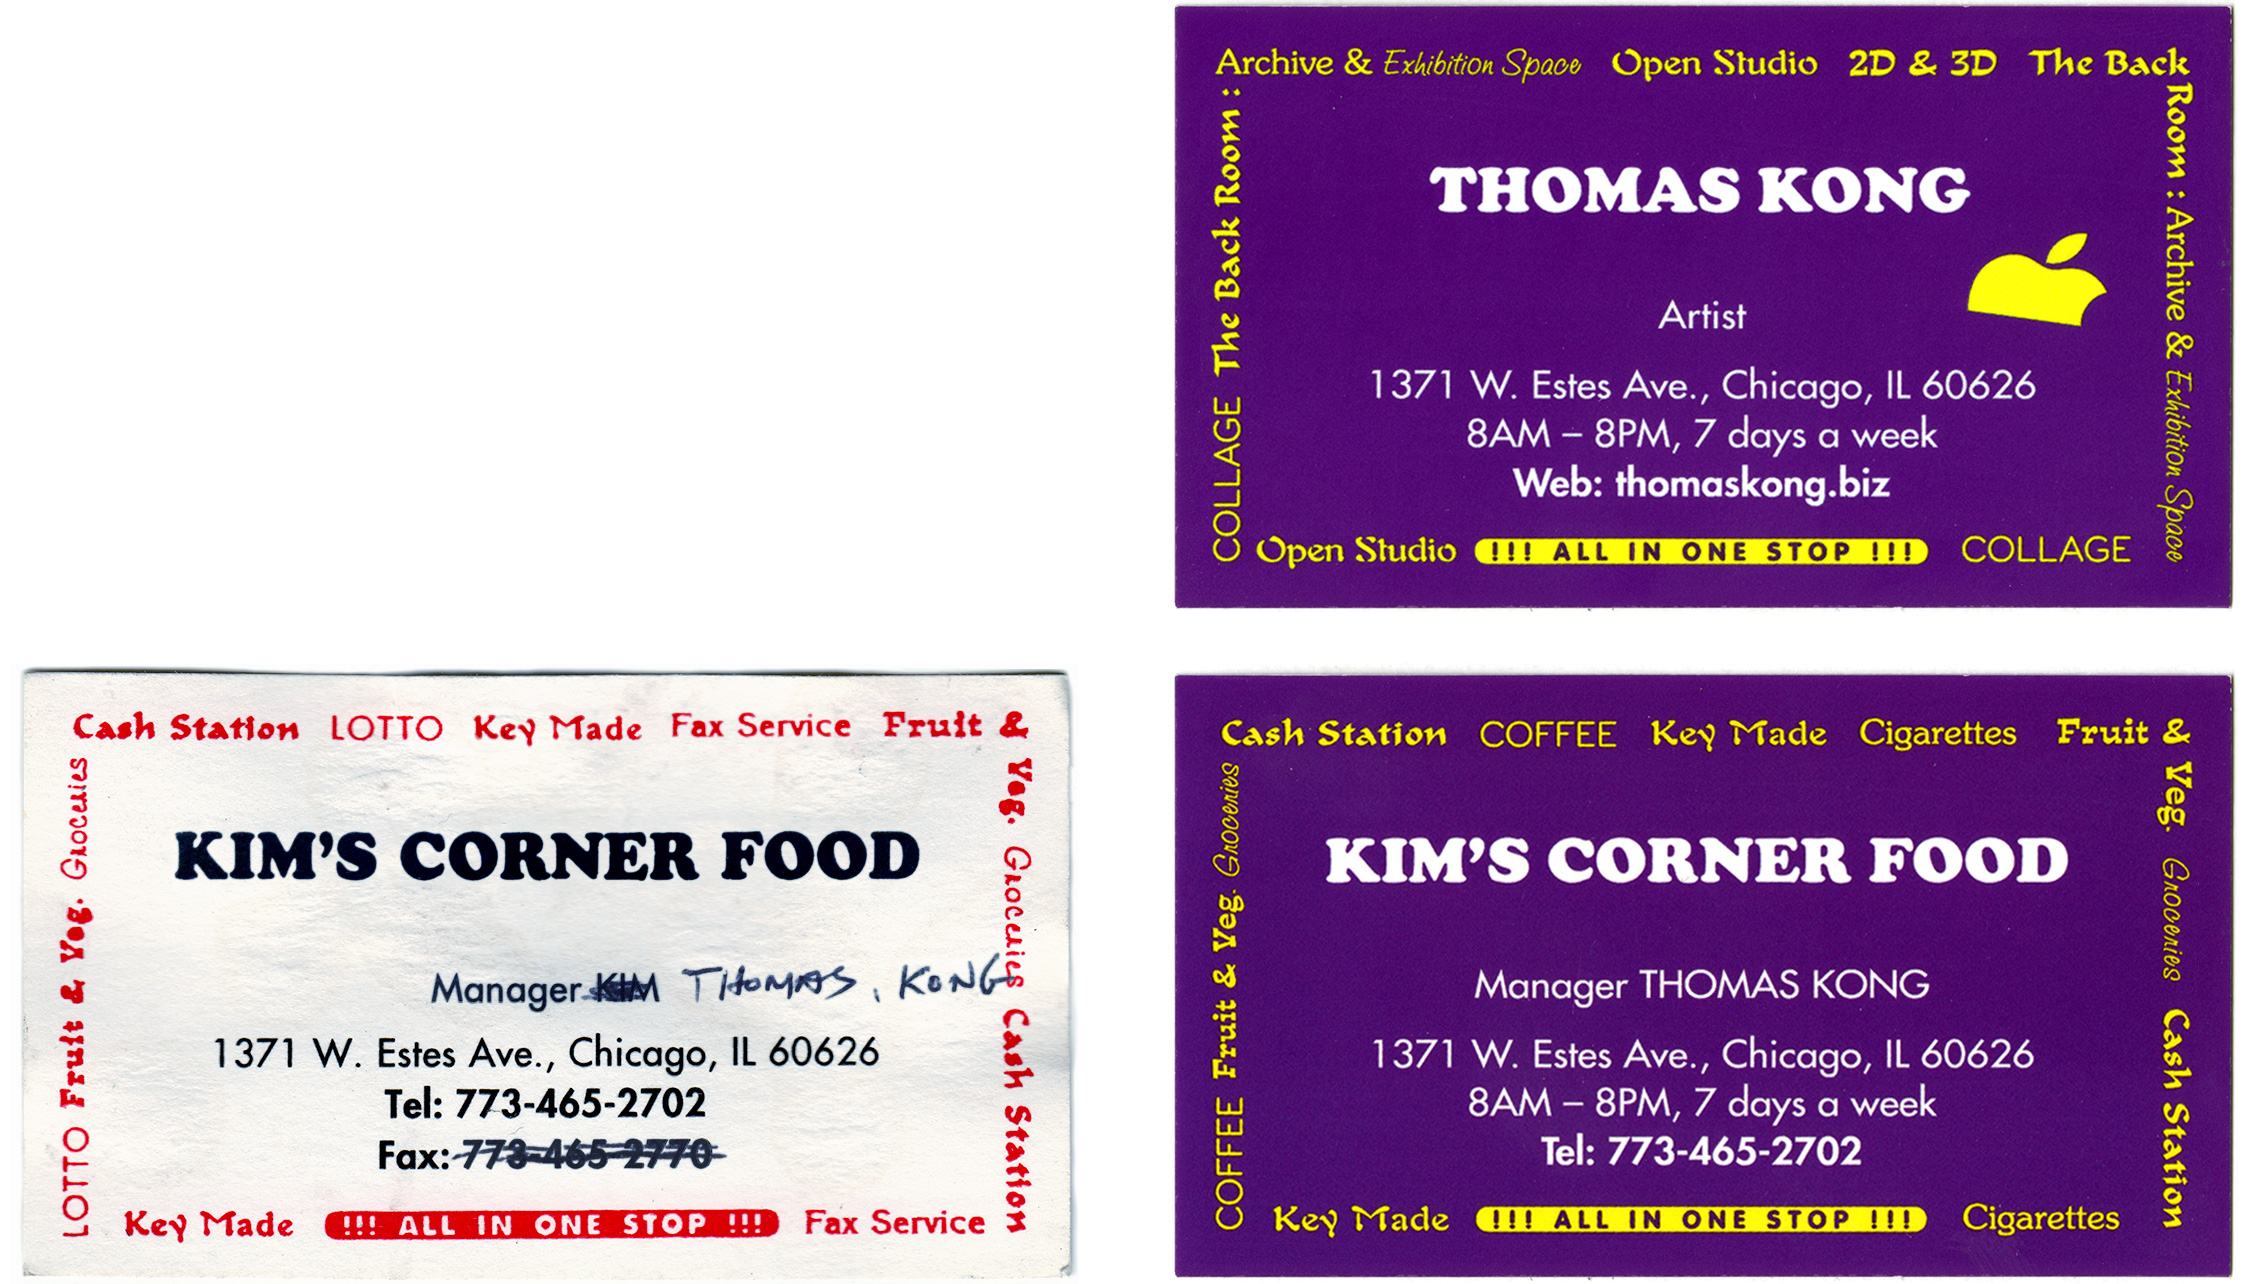 Left: Business card for Kim's Corner Food, c.late 1980s/early 1990s Right: Dan Miller/Thomas Kong, Business card for Kim's Corner Food and Thomas Kong (back and front), 2015